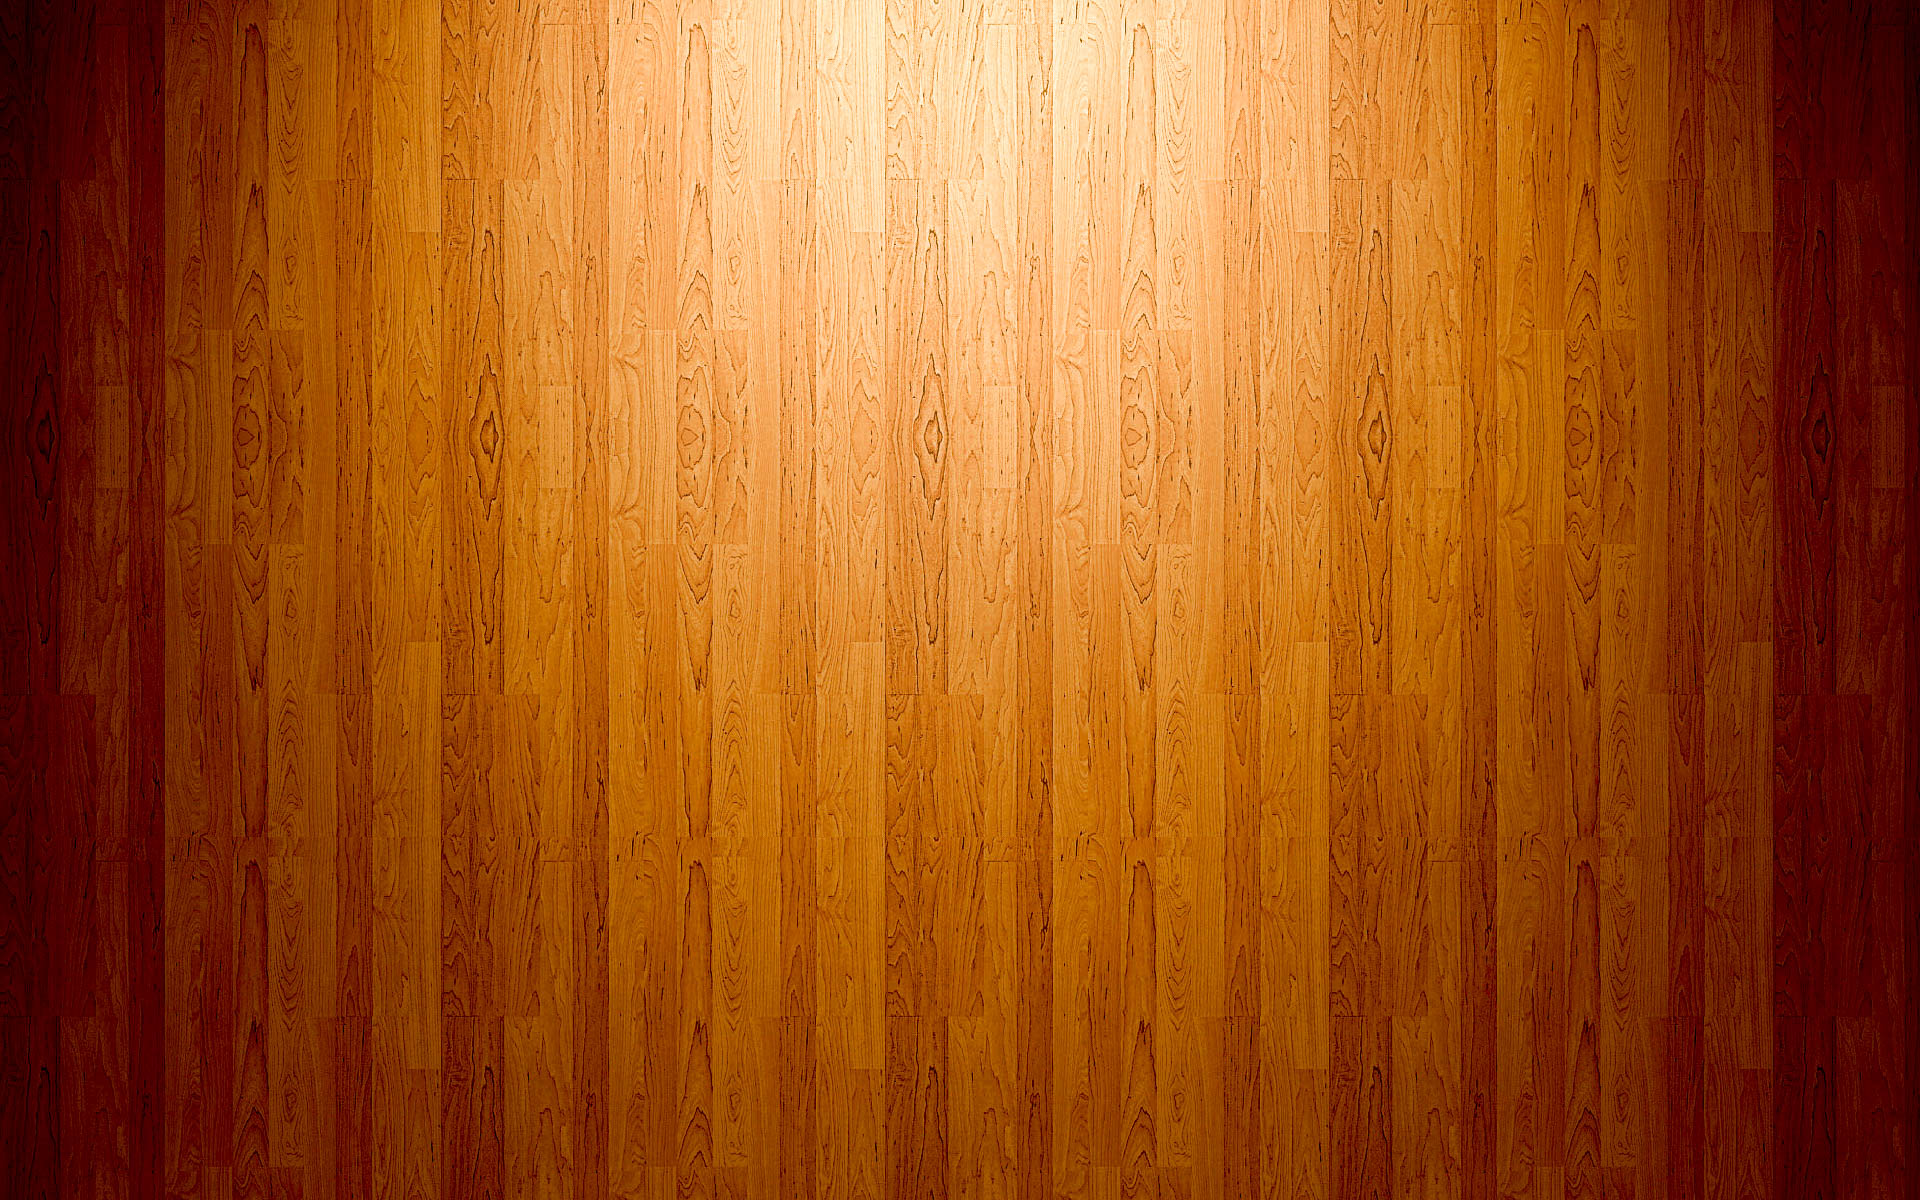 Wood Pattern Based Some Beautiful Wallpapers Images In High Resolution